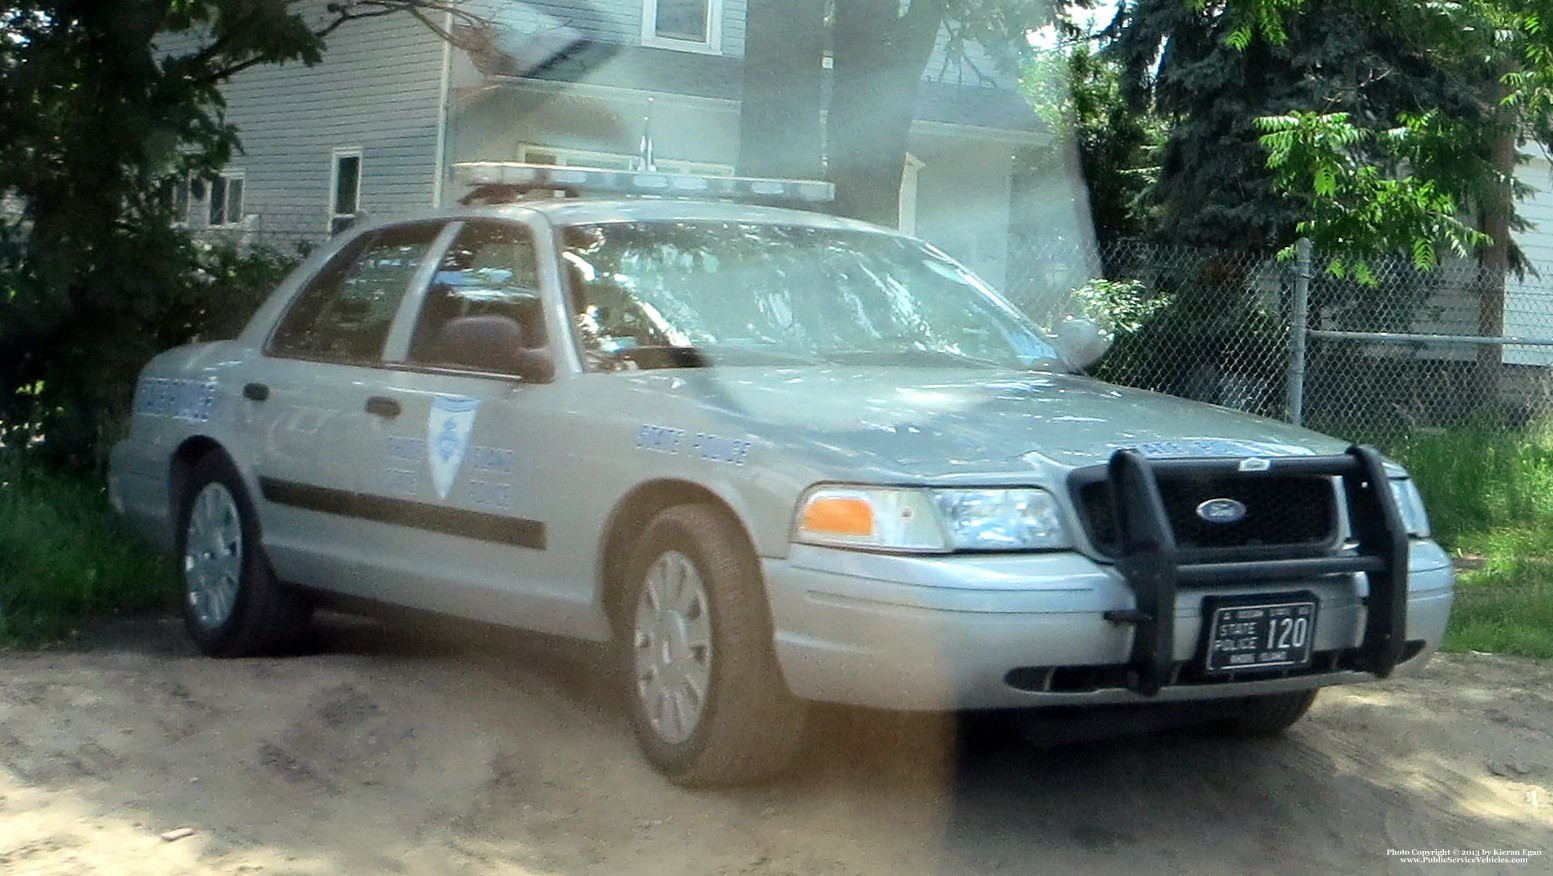 A photo  of Rhode Island State Police             Cruiser 120, a 2006-2008 Ford Crown Victoria Police Interceptor             taken by Kieran Egan